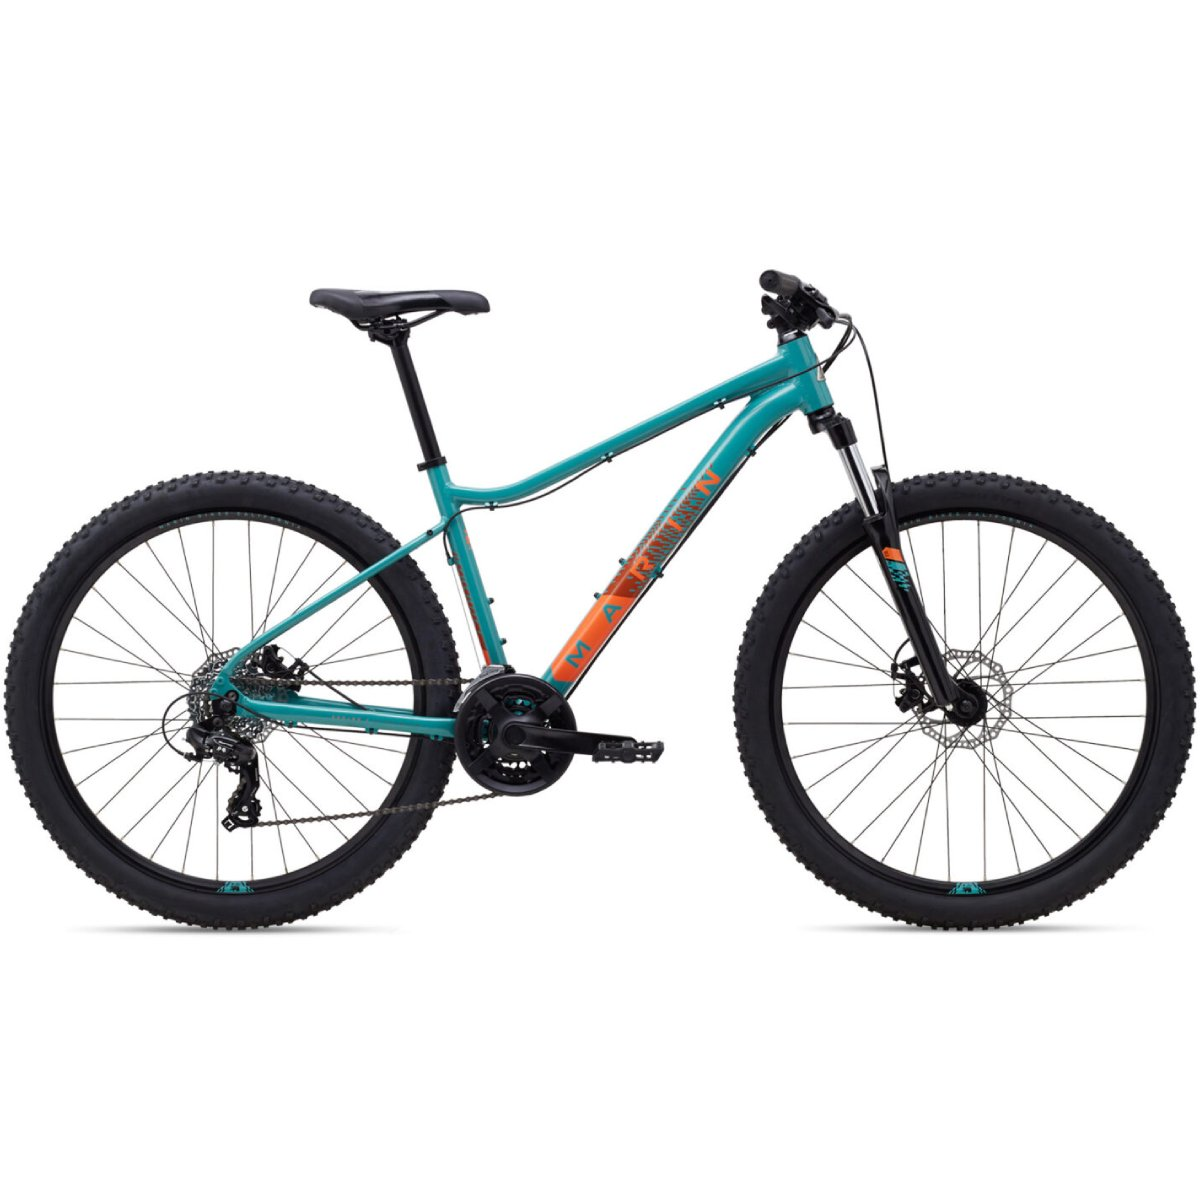 MARIN WILDCAT TRAIL 1 TURQUOISE/CORAIL LARGE